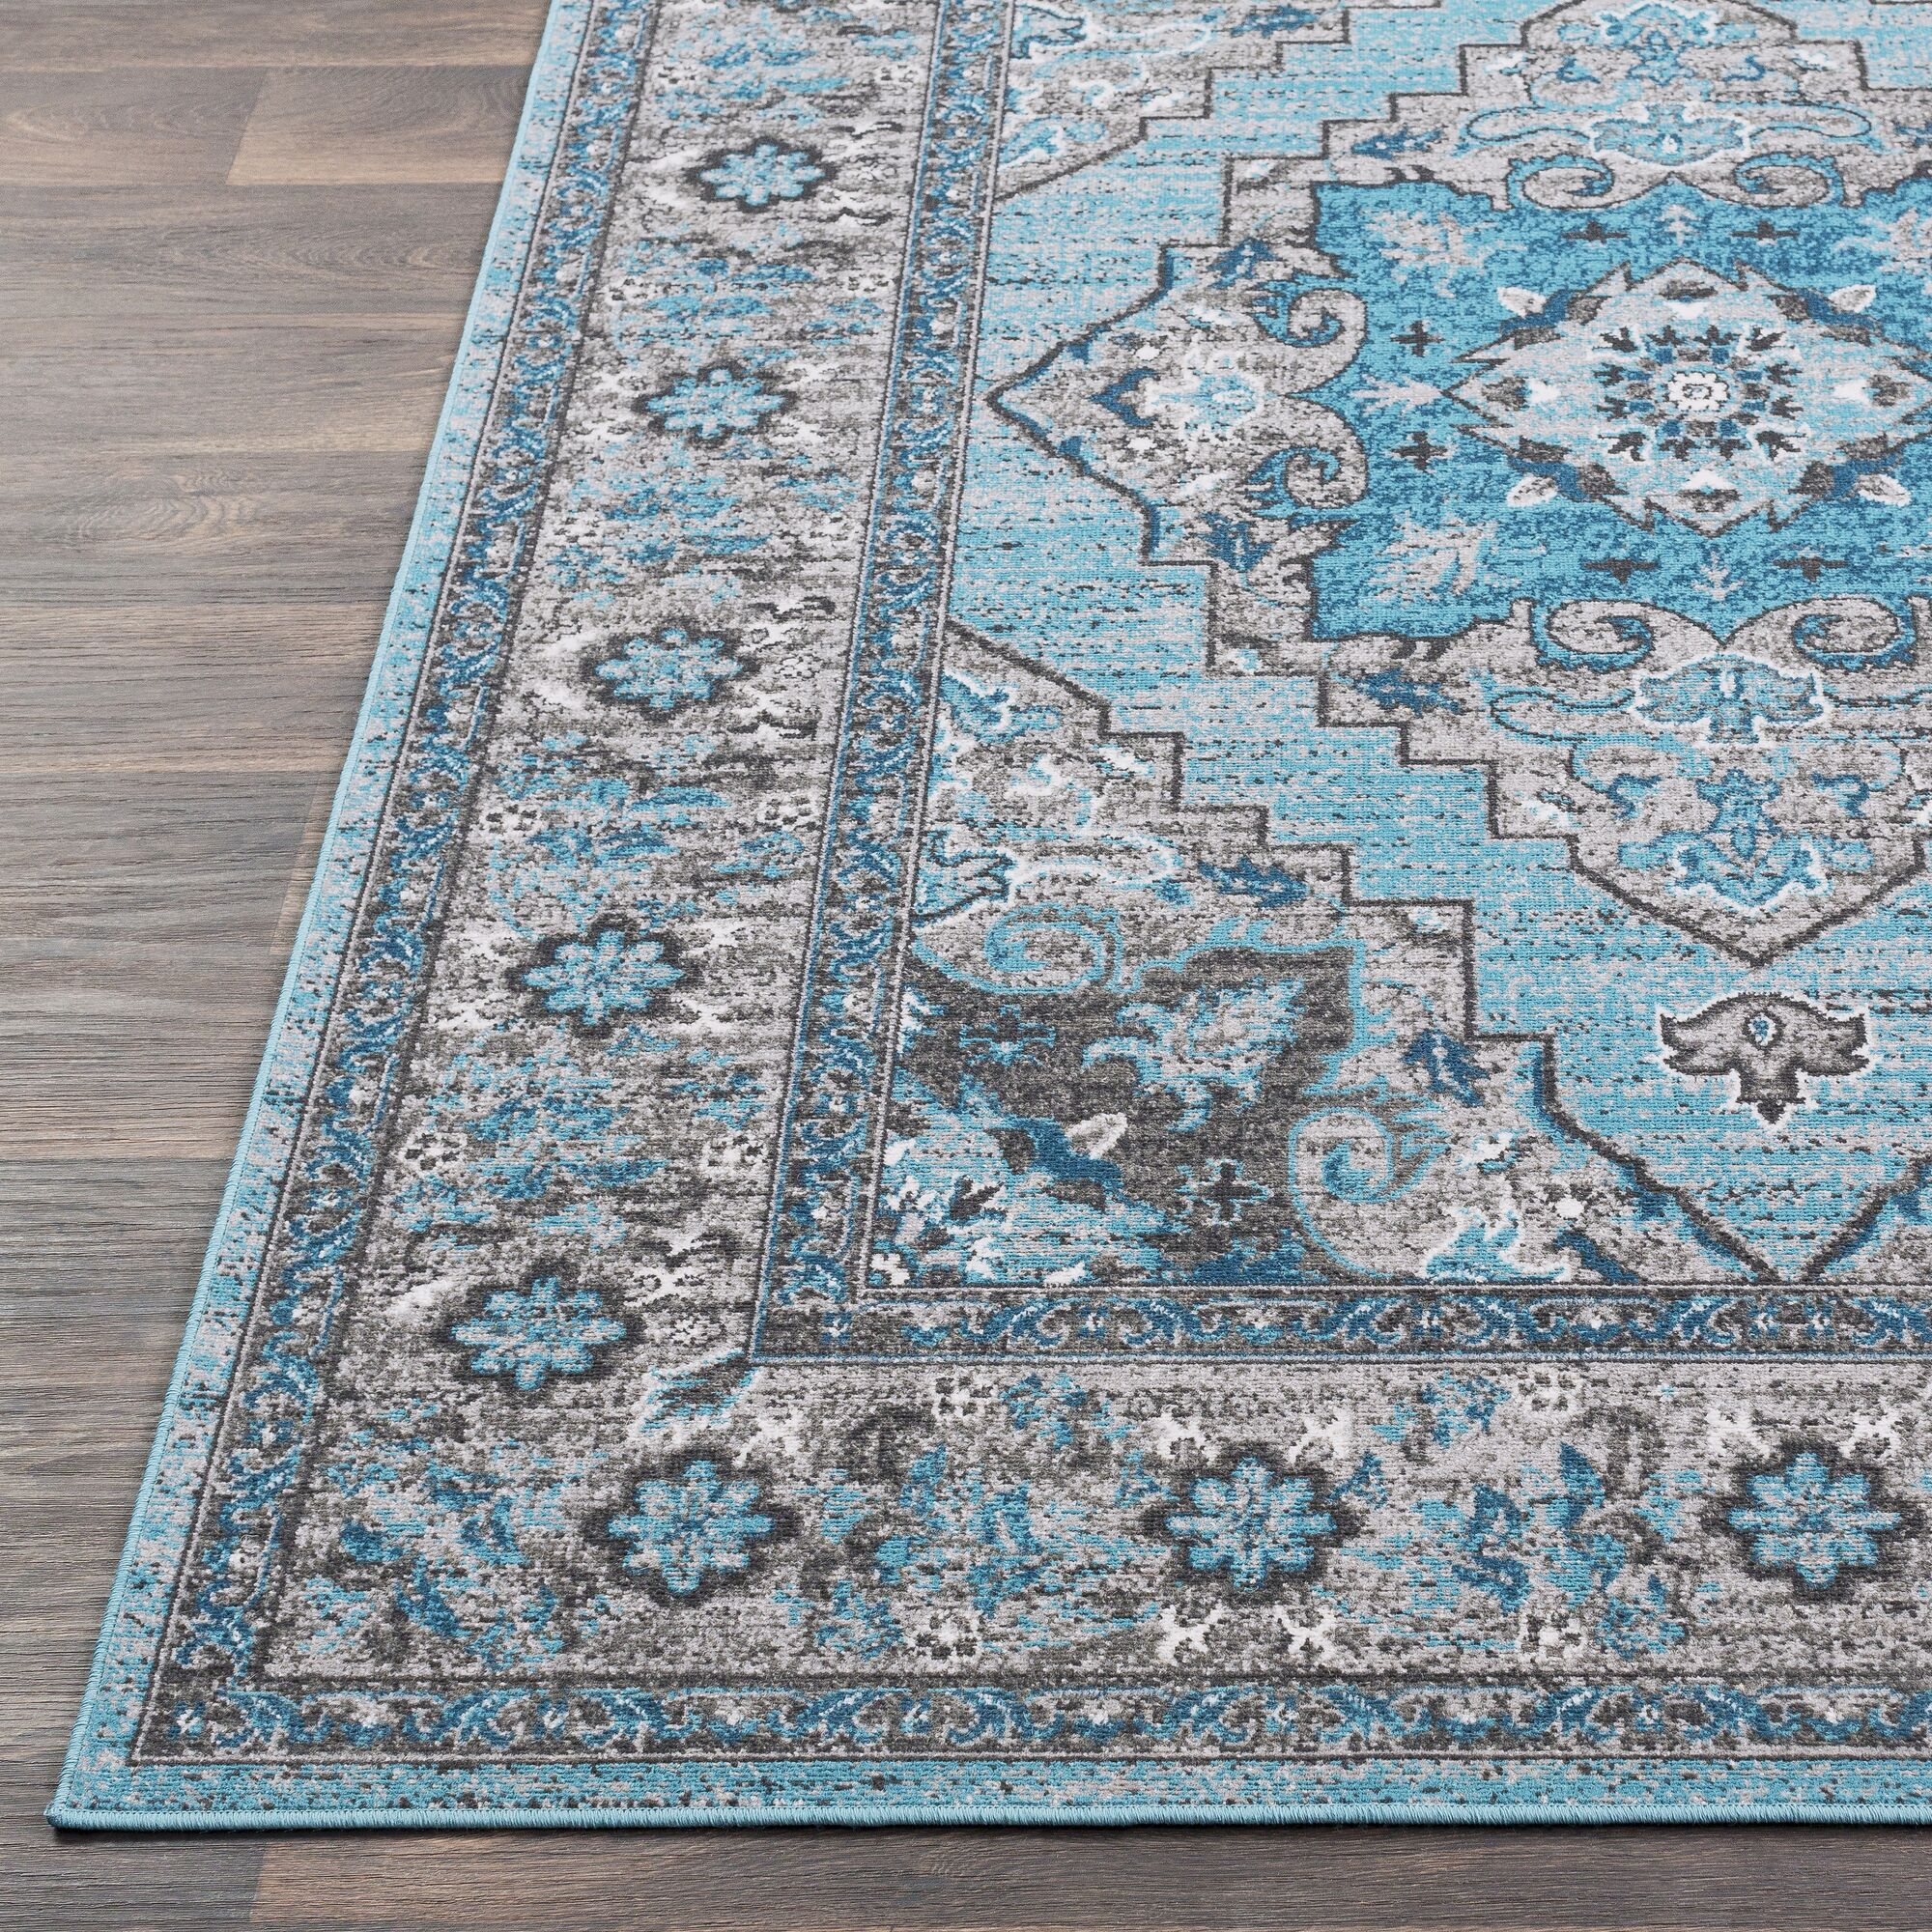 Sharpes Teal/Gray Area Rug Rug Size: Rectangle 5'3